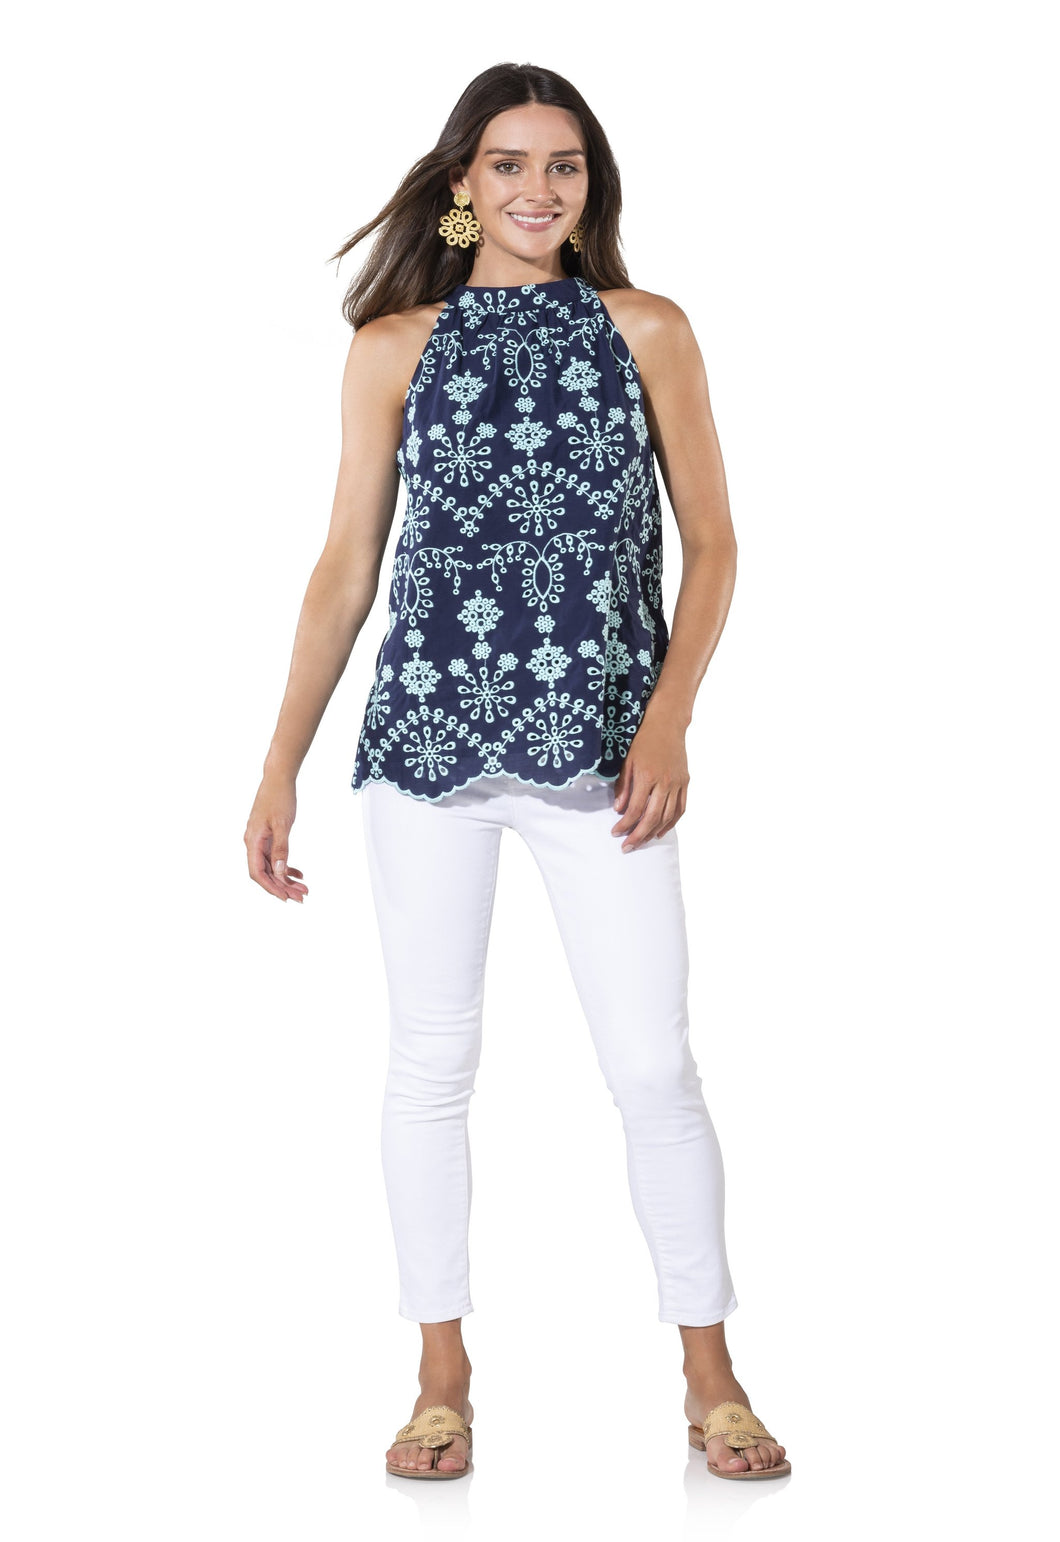 Embroidered Cotton Sleeveless Halter Top in Navy by Sail to Sable SP1959